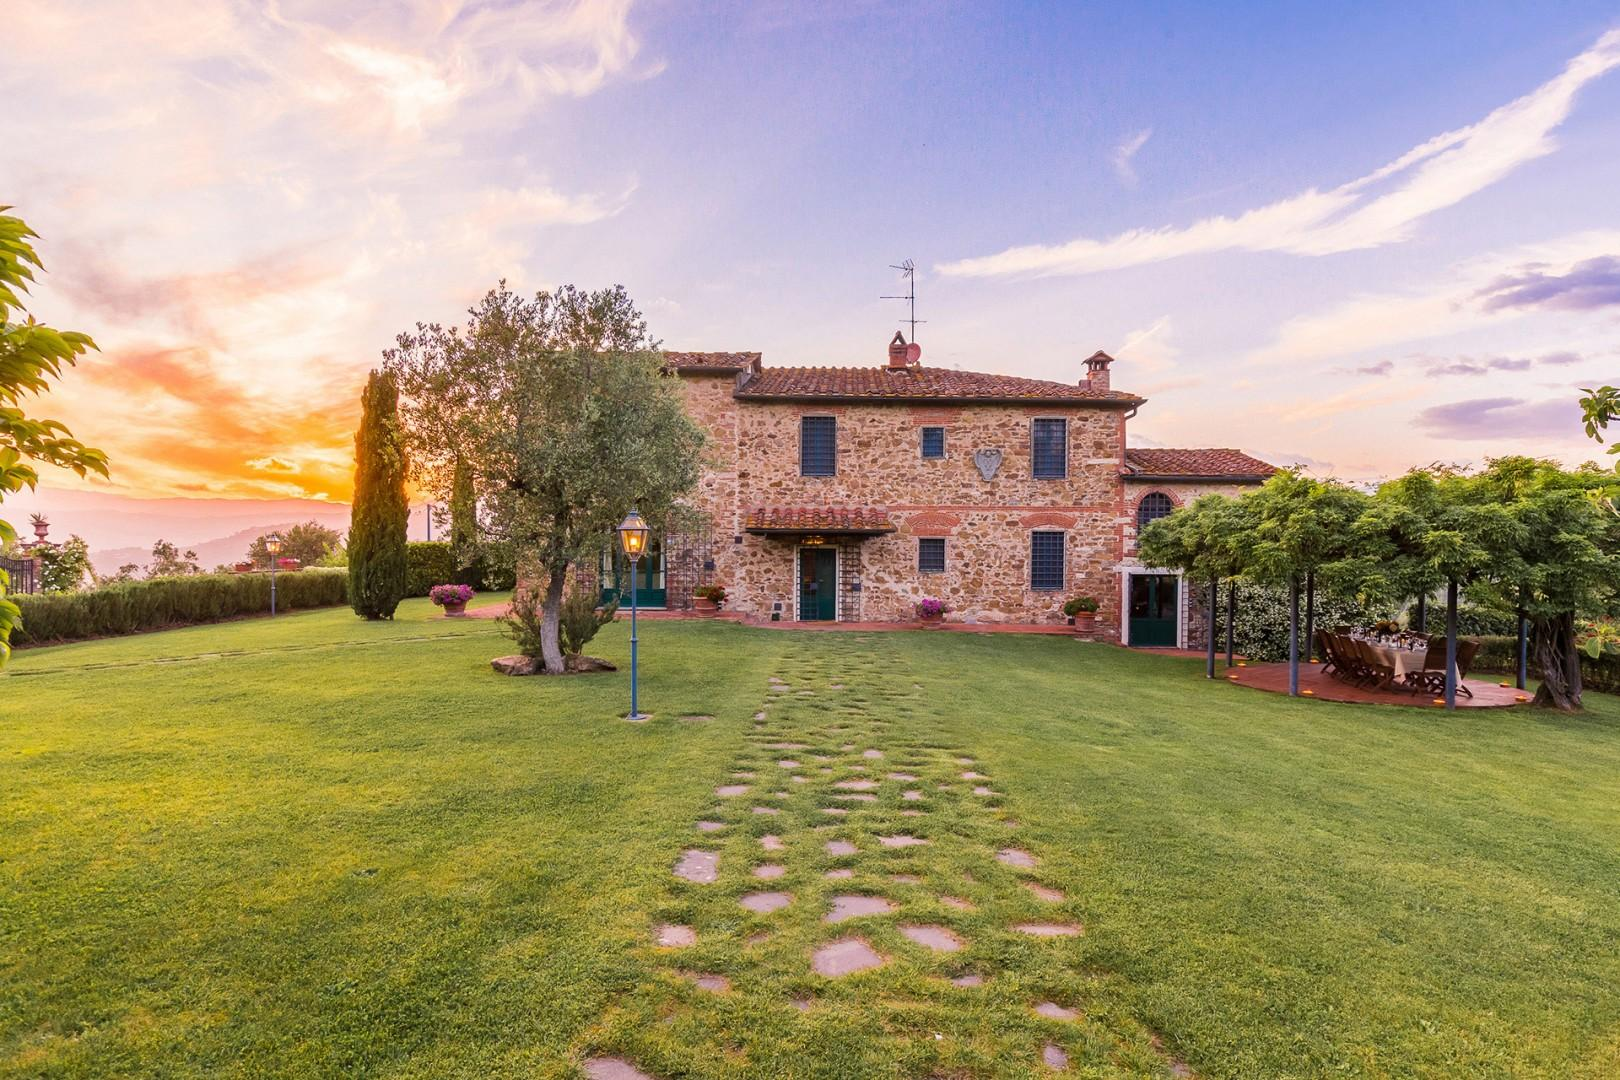 Regina is located on a large property with manicured landscaping. It adjoins olive groves.